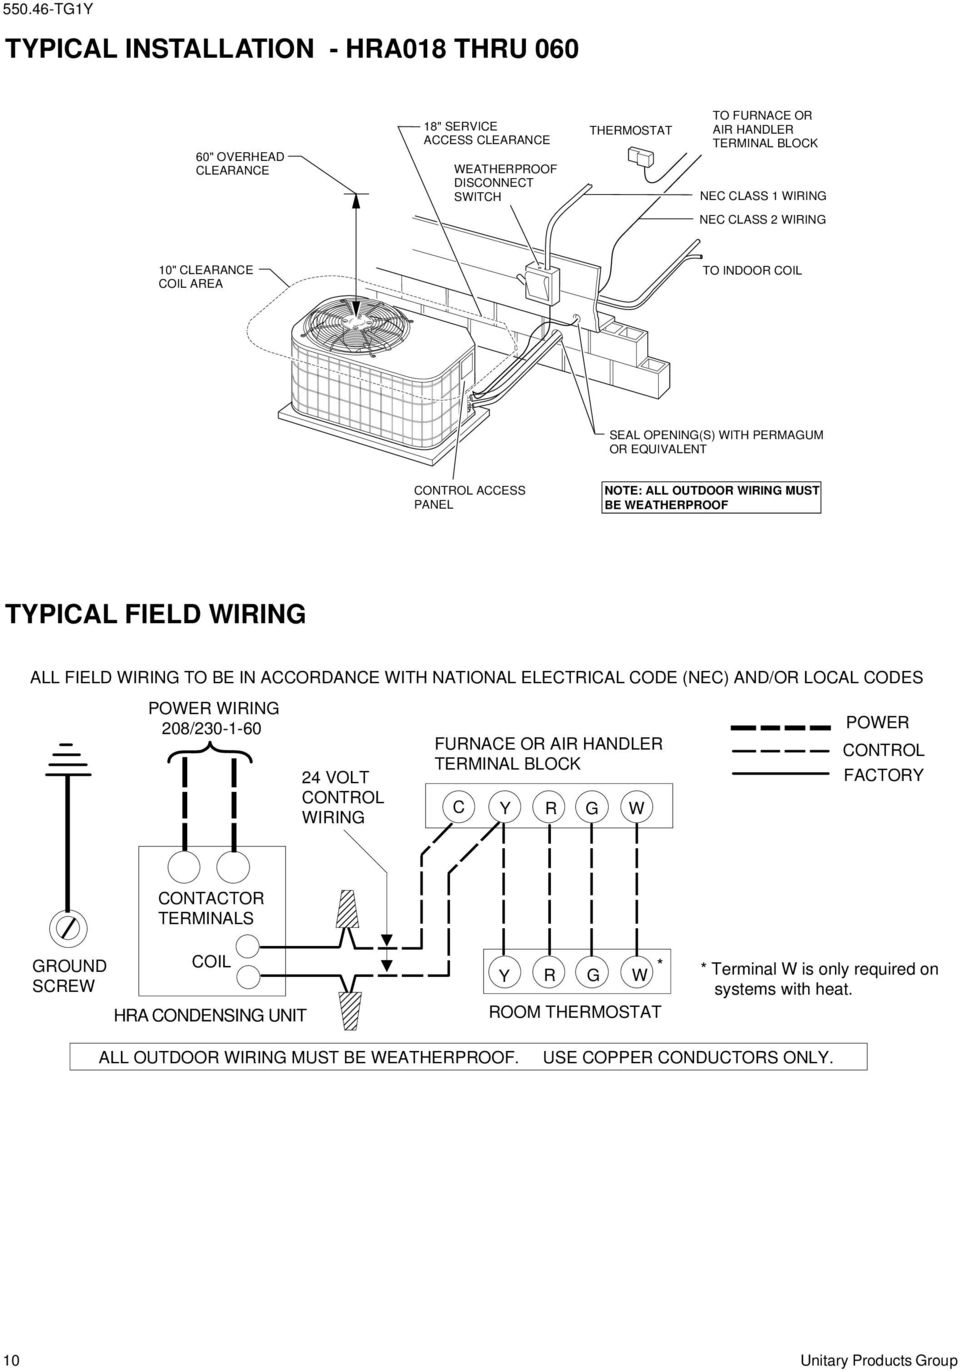 Split System Condensing Units Seer Hra018 Thru 060 15 5 Outdoor Wiring Code In Accordance With National Electrical Nec And Or Local Codes Power